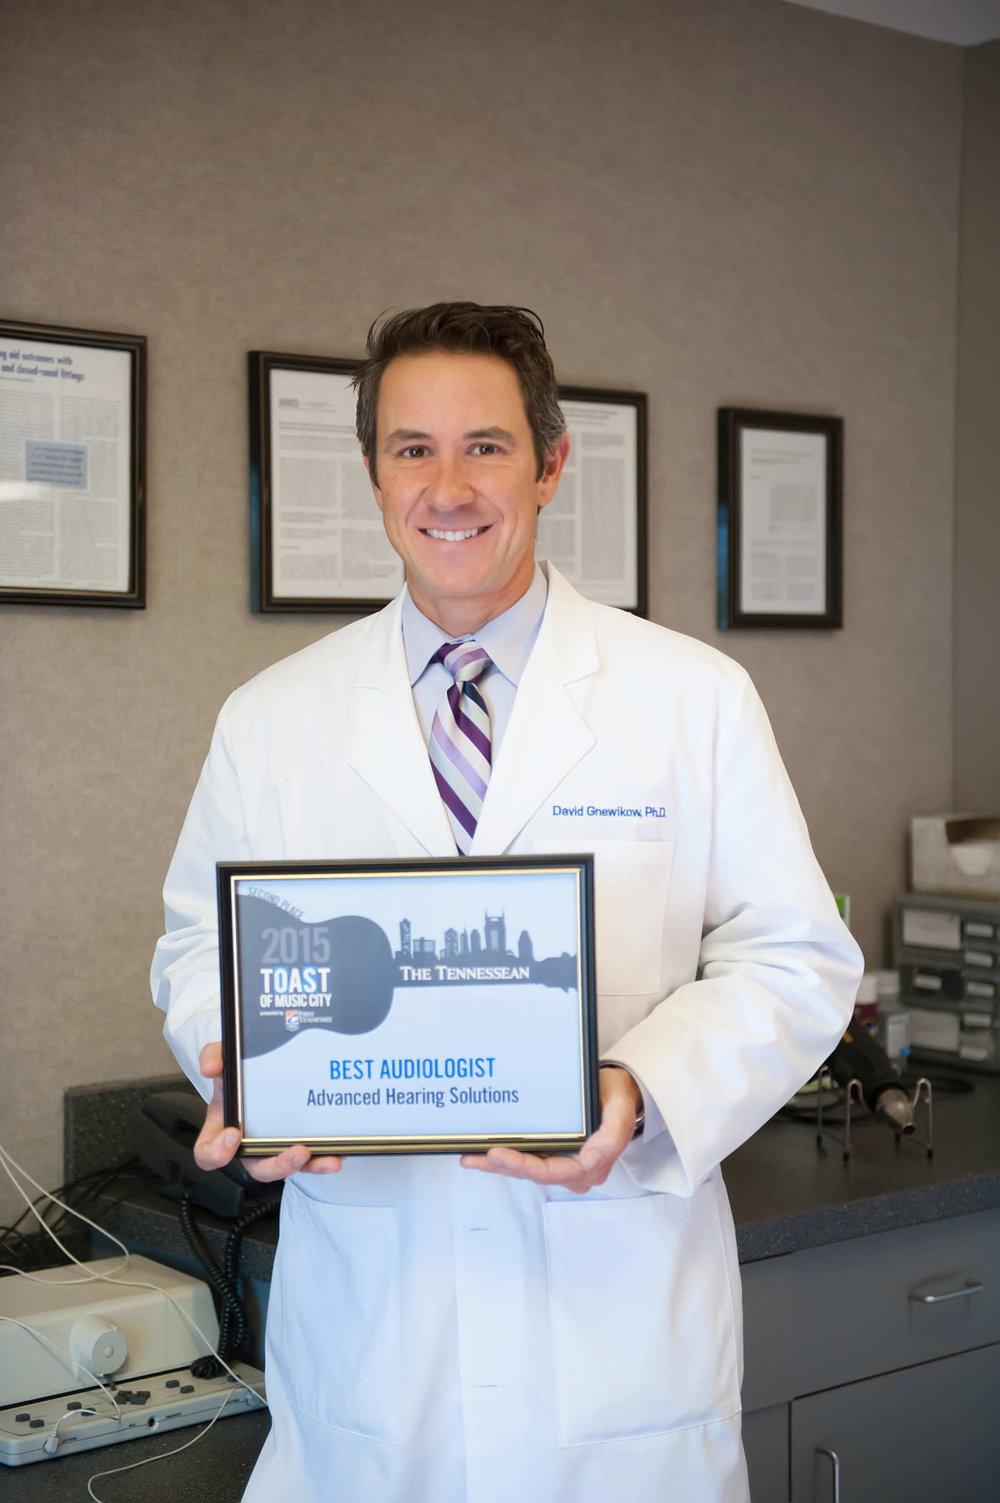 Dr. David Gnewikow holding his Tennessean Award for Best Audiologist